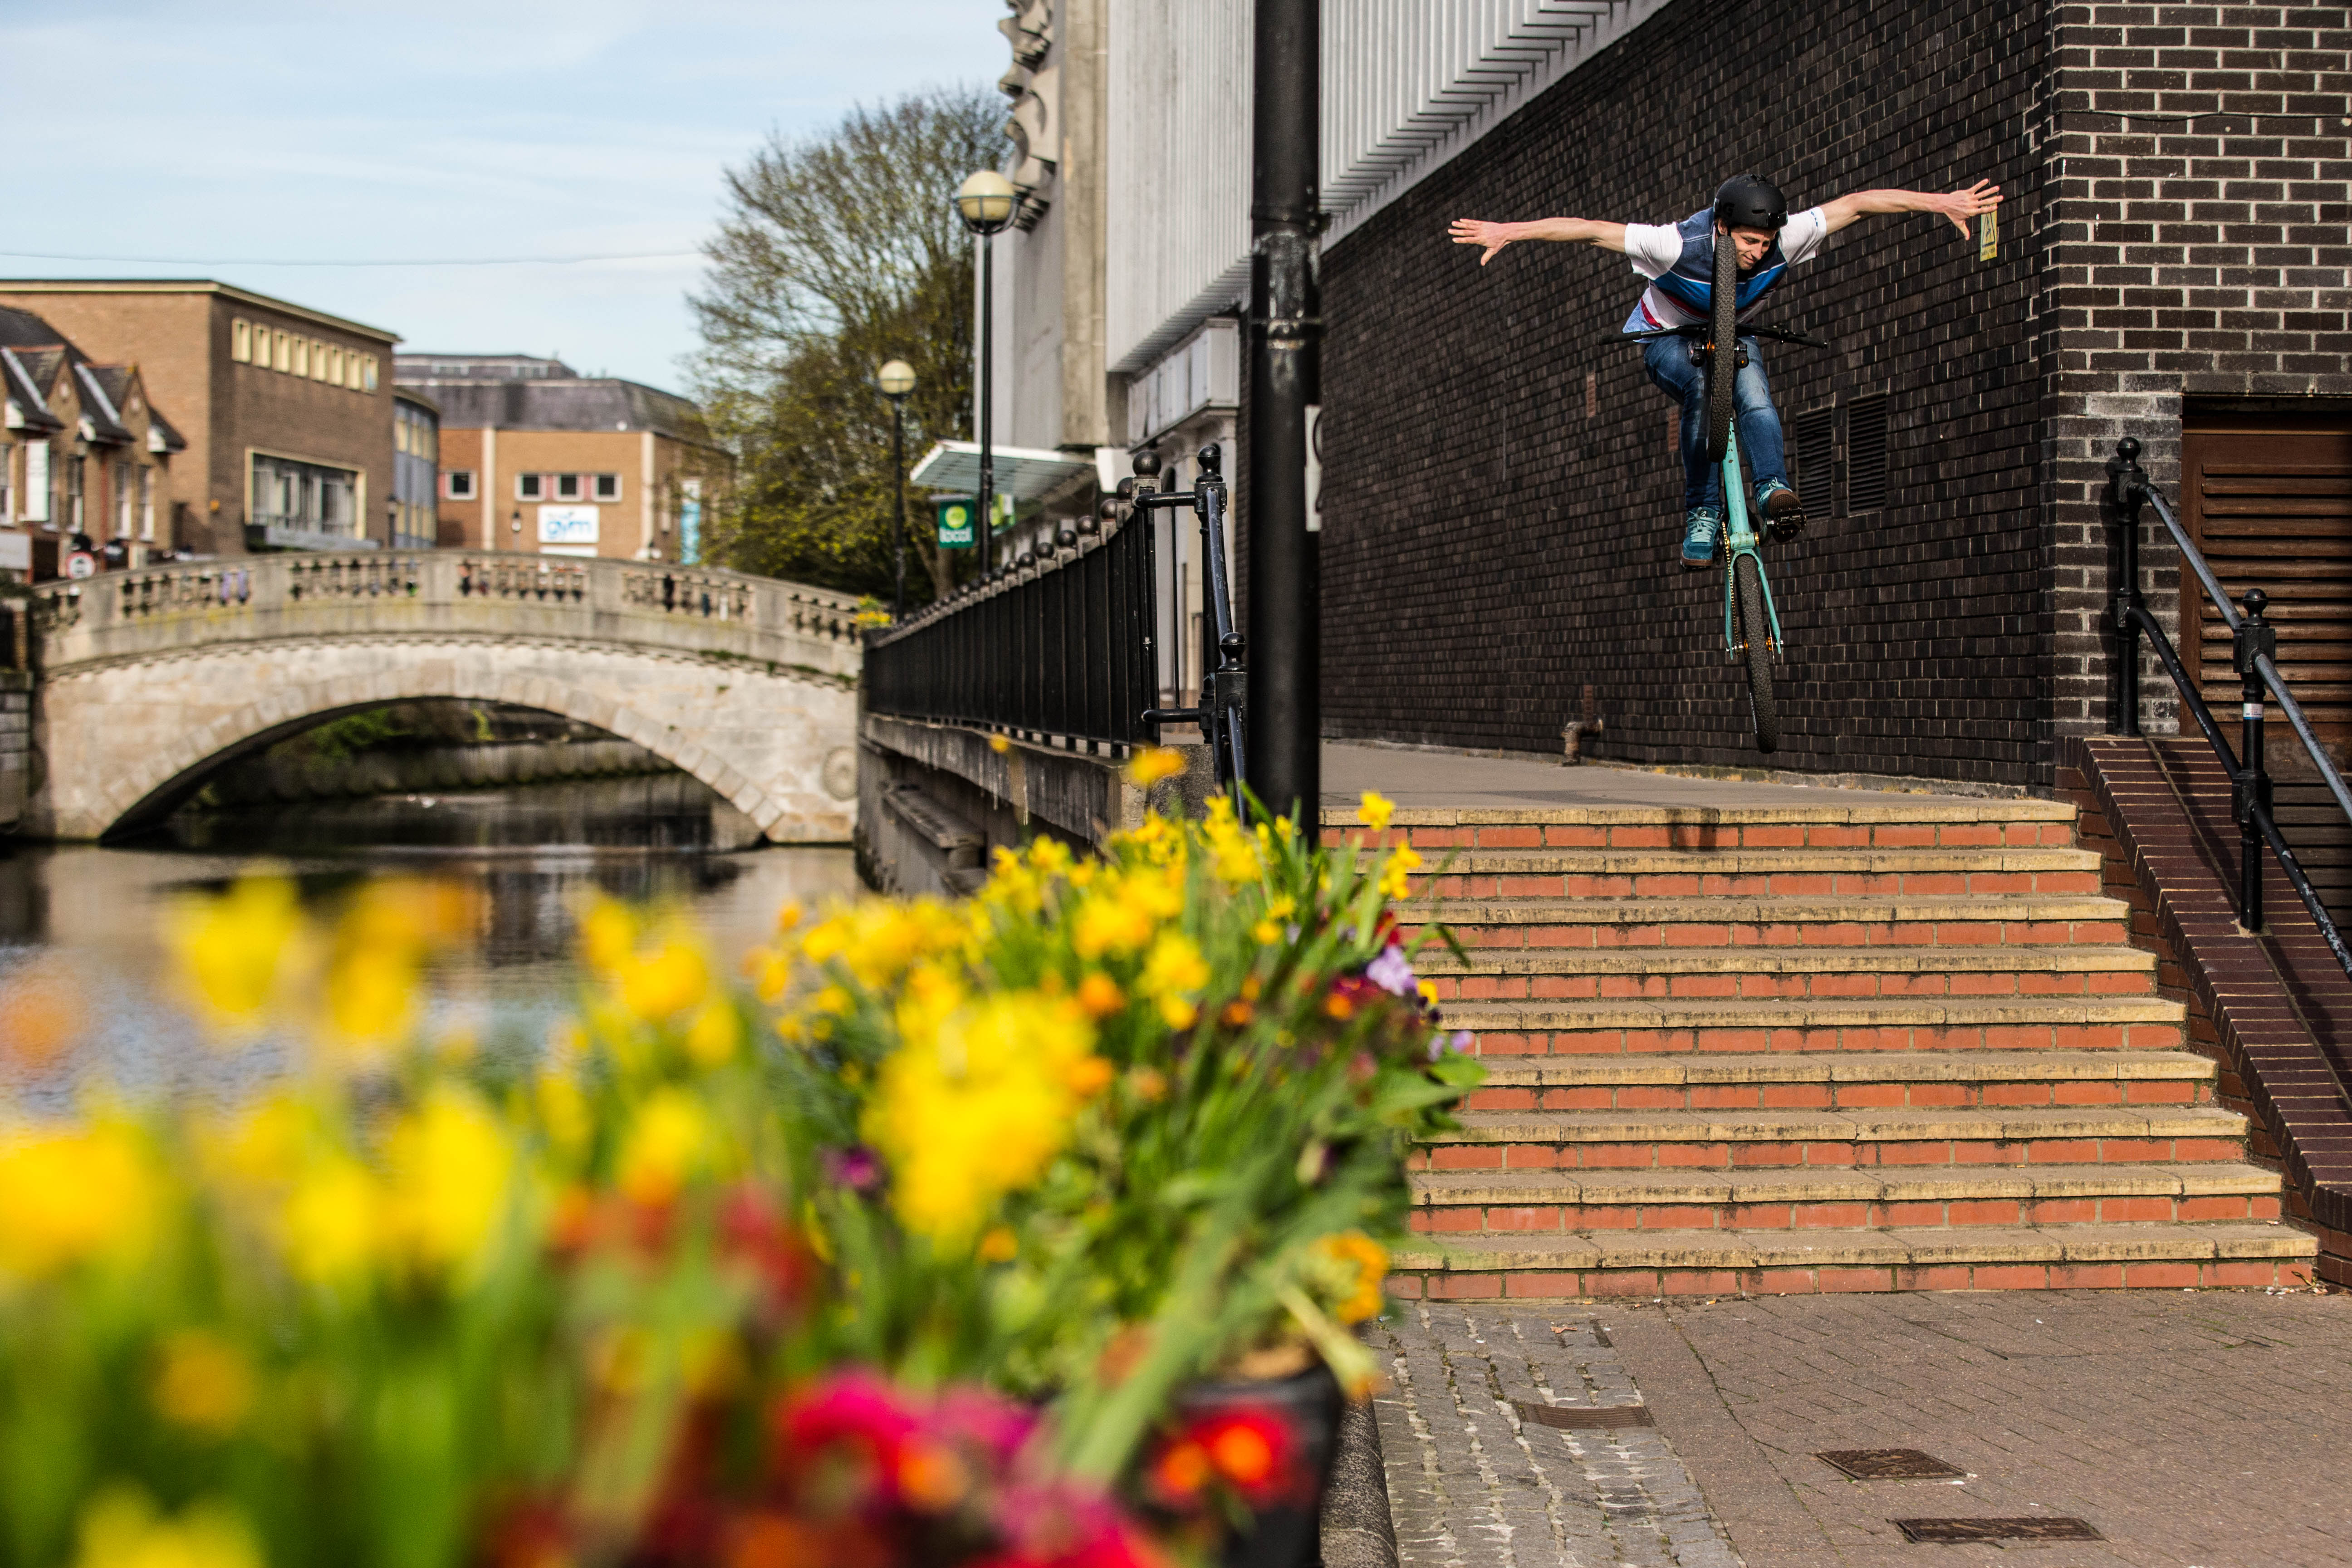 Tom Cardy has more skill than most, comfortably sending this set of stairs with a tuck no-hander! Credit: Simon Nieborak